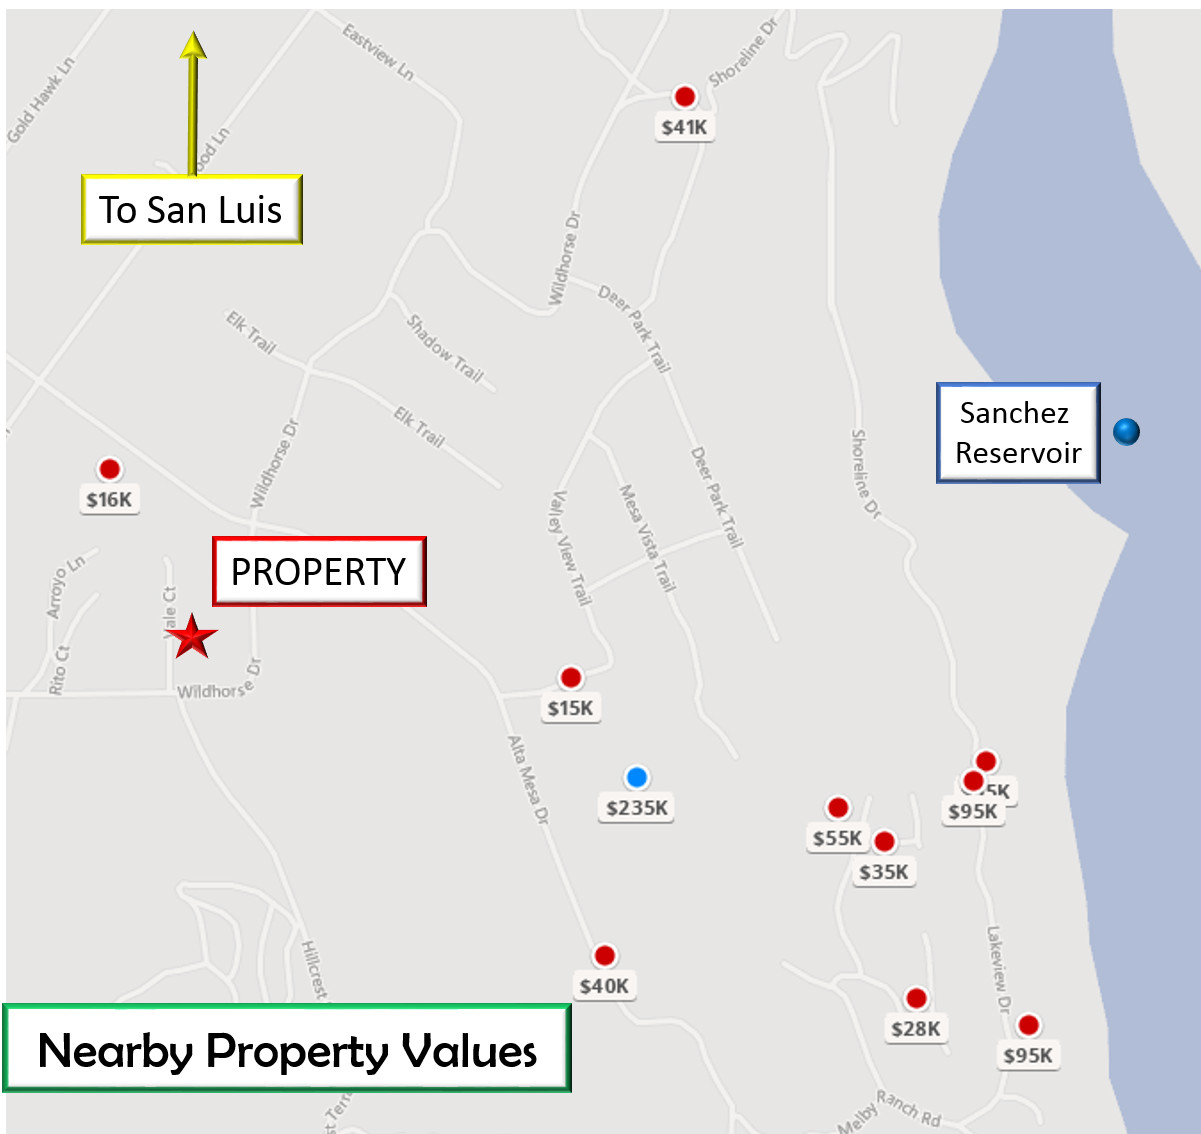 property_values_nearby2